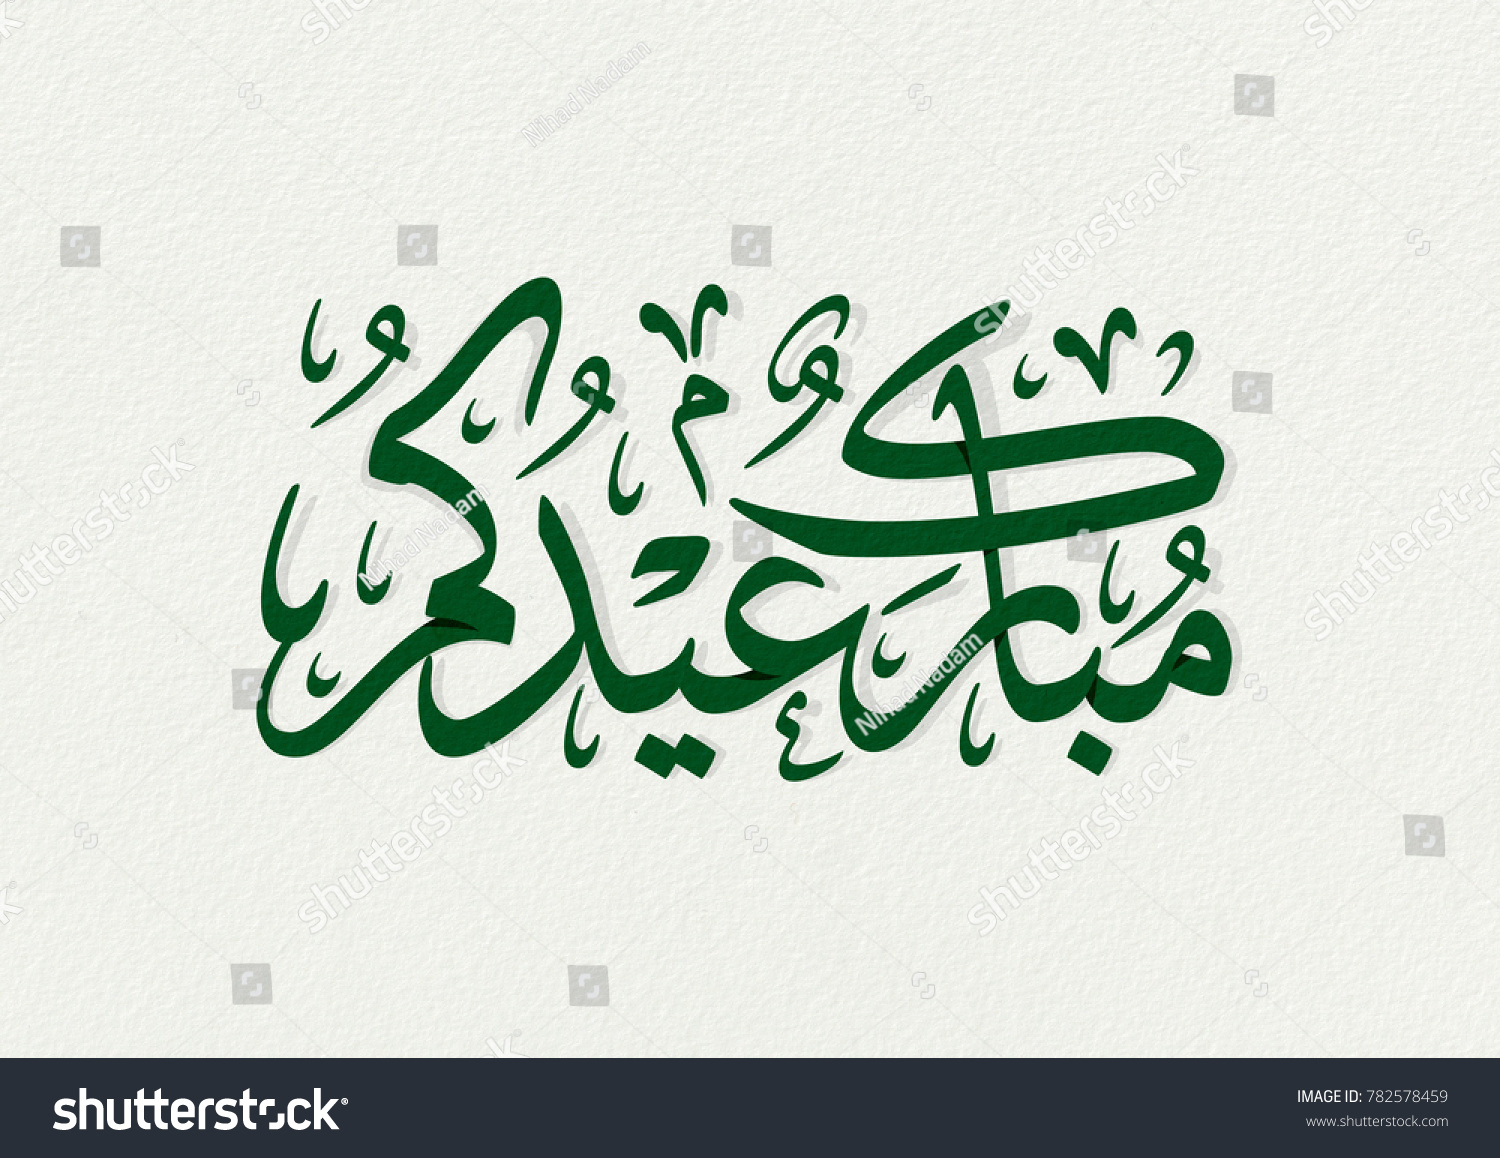 Blessed eid greeting cards arabic calligraphy stock illustration blessed eid greeting cards arabic calligraphy kristyandbryce Image collections